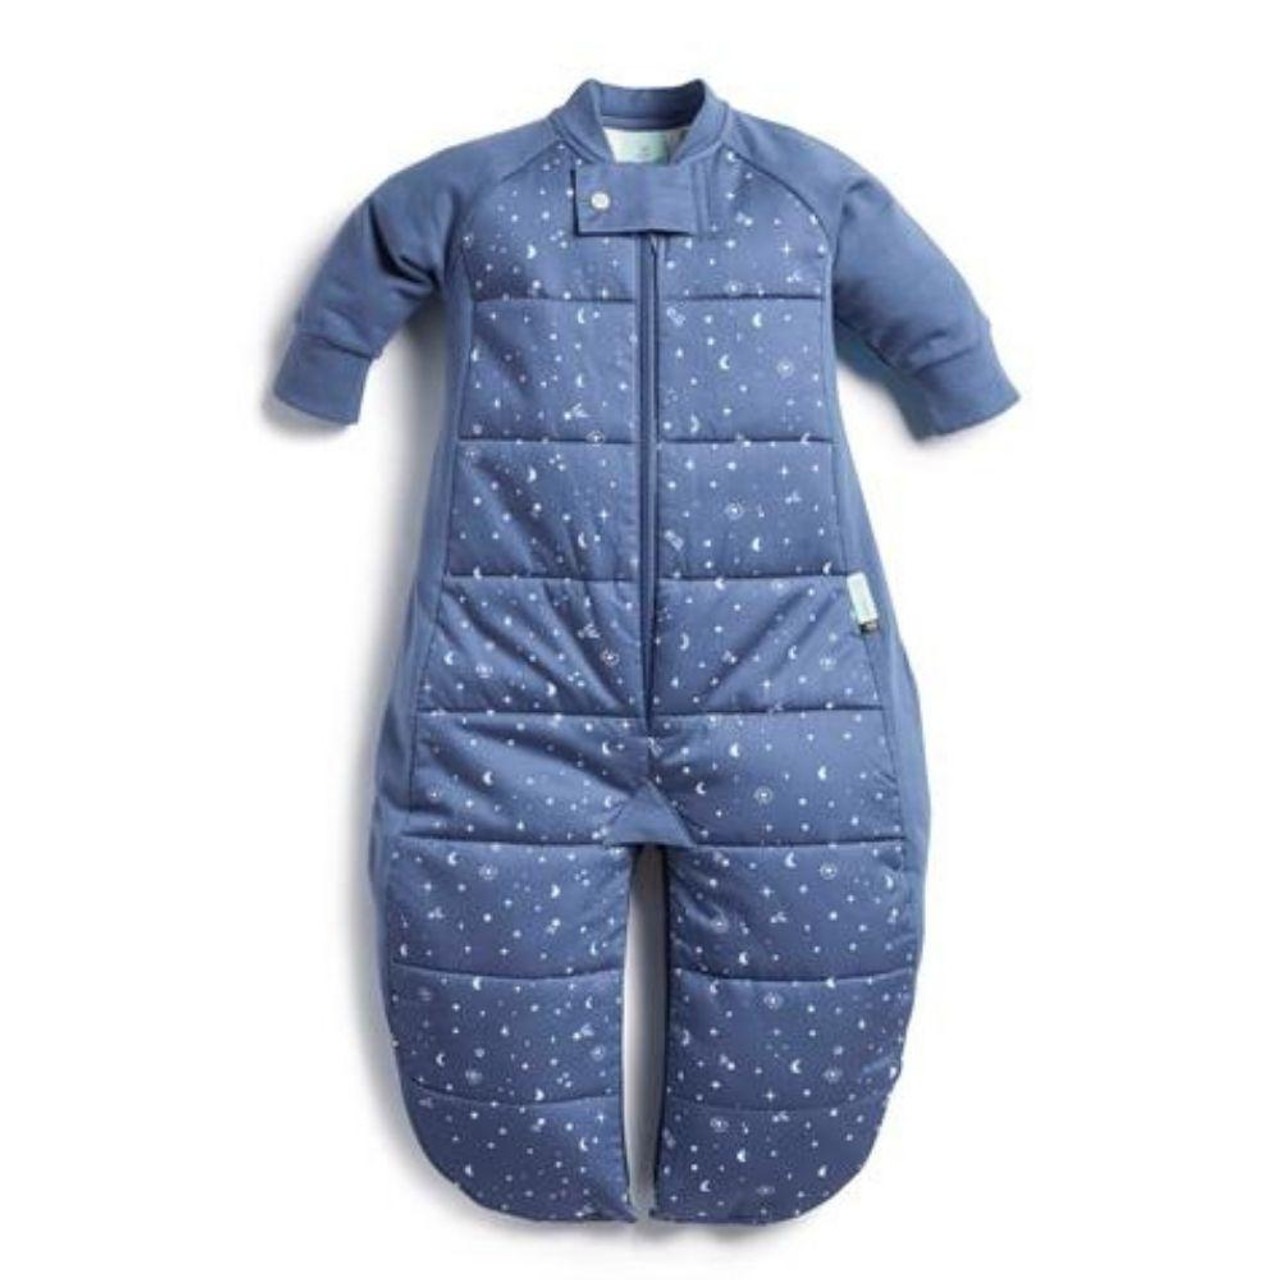 Ergopouch Sleepsuit Bag 2.5 Tog 8-24 Months at Baby Barn Discounts